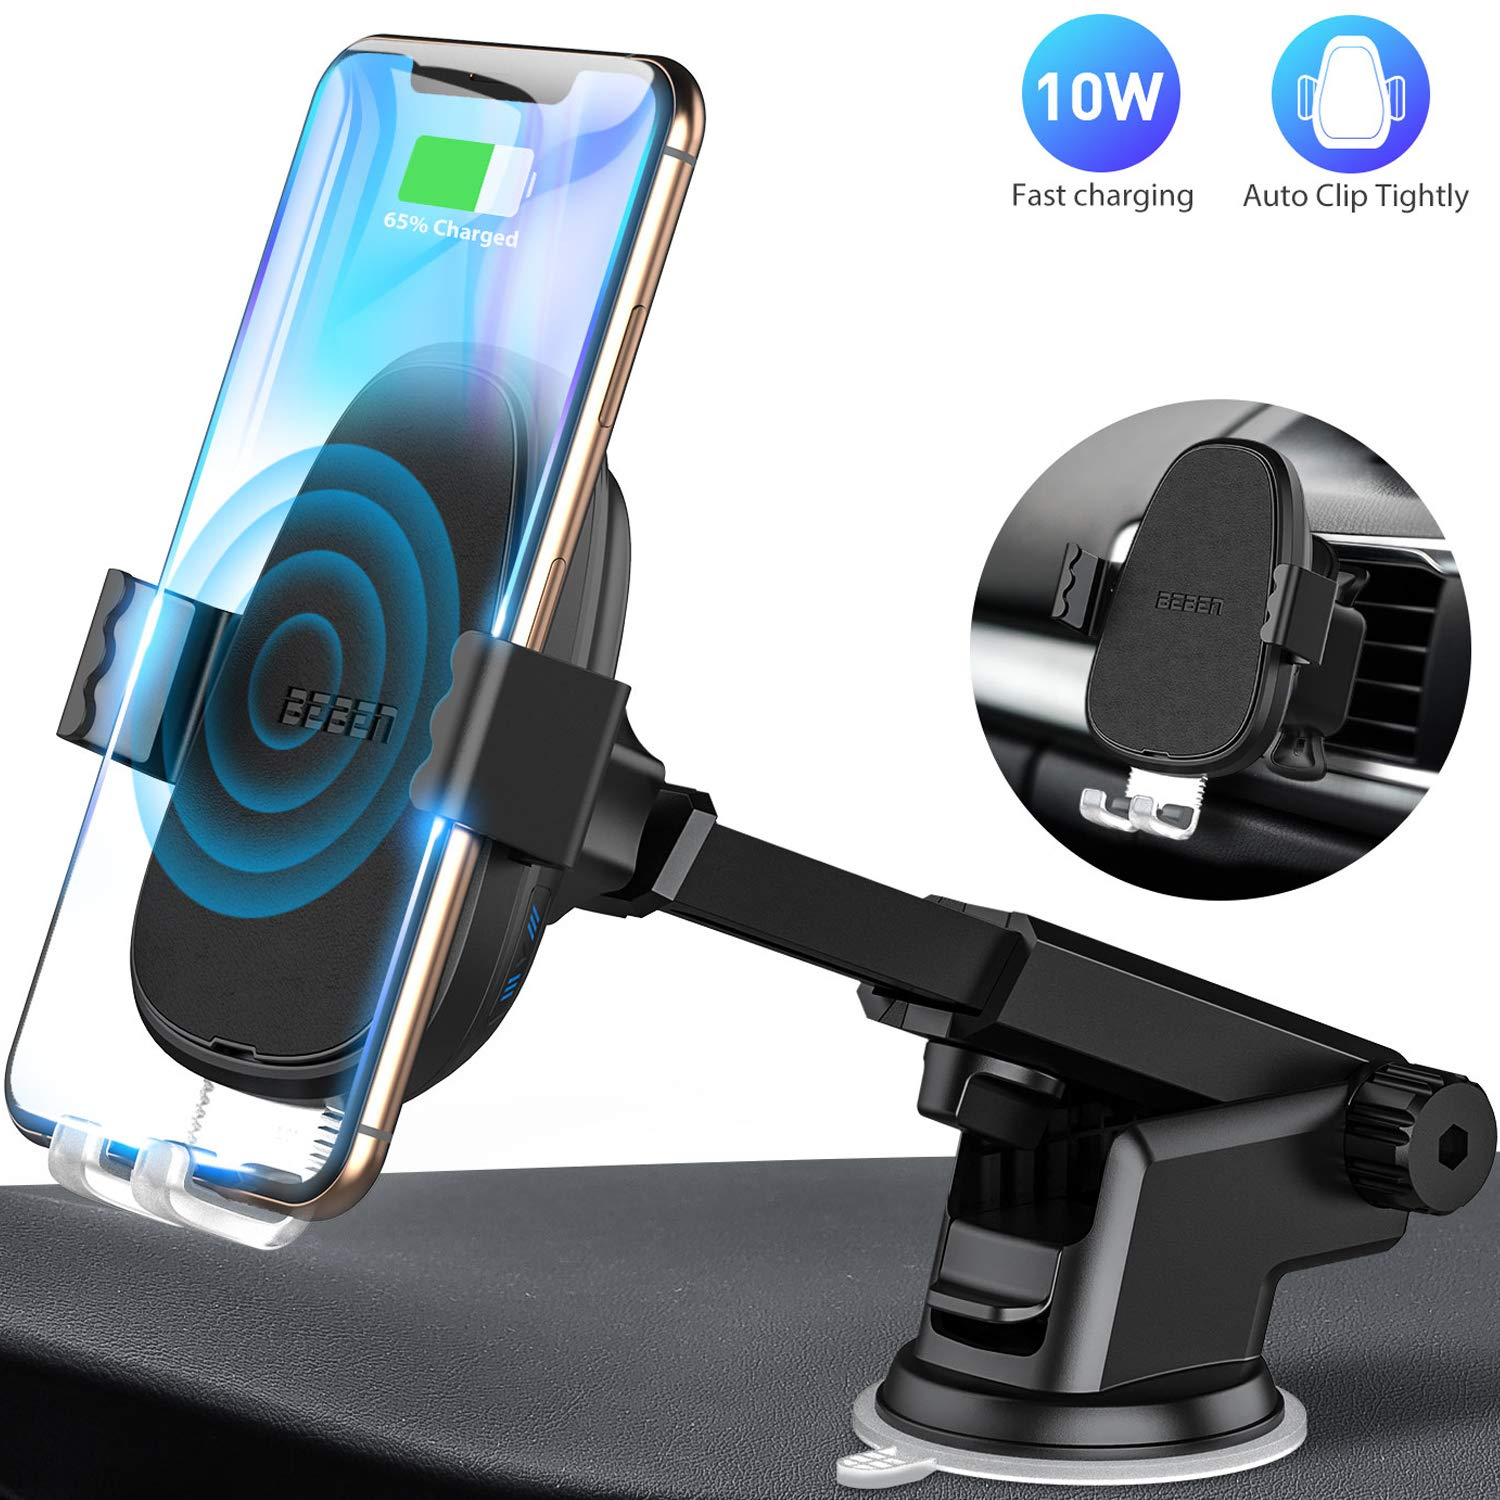 BEBEN Wireless Car Charger Mount, Automatic Clamping Windshield Dashboard Air Vent Phone Holder, Qi Fast Charging Compatible with iPhone Xs Max XR X 8 8+, Samsung and LG (Charger Adapter not Include)